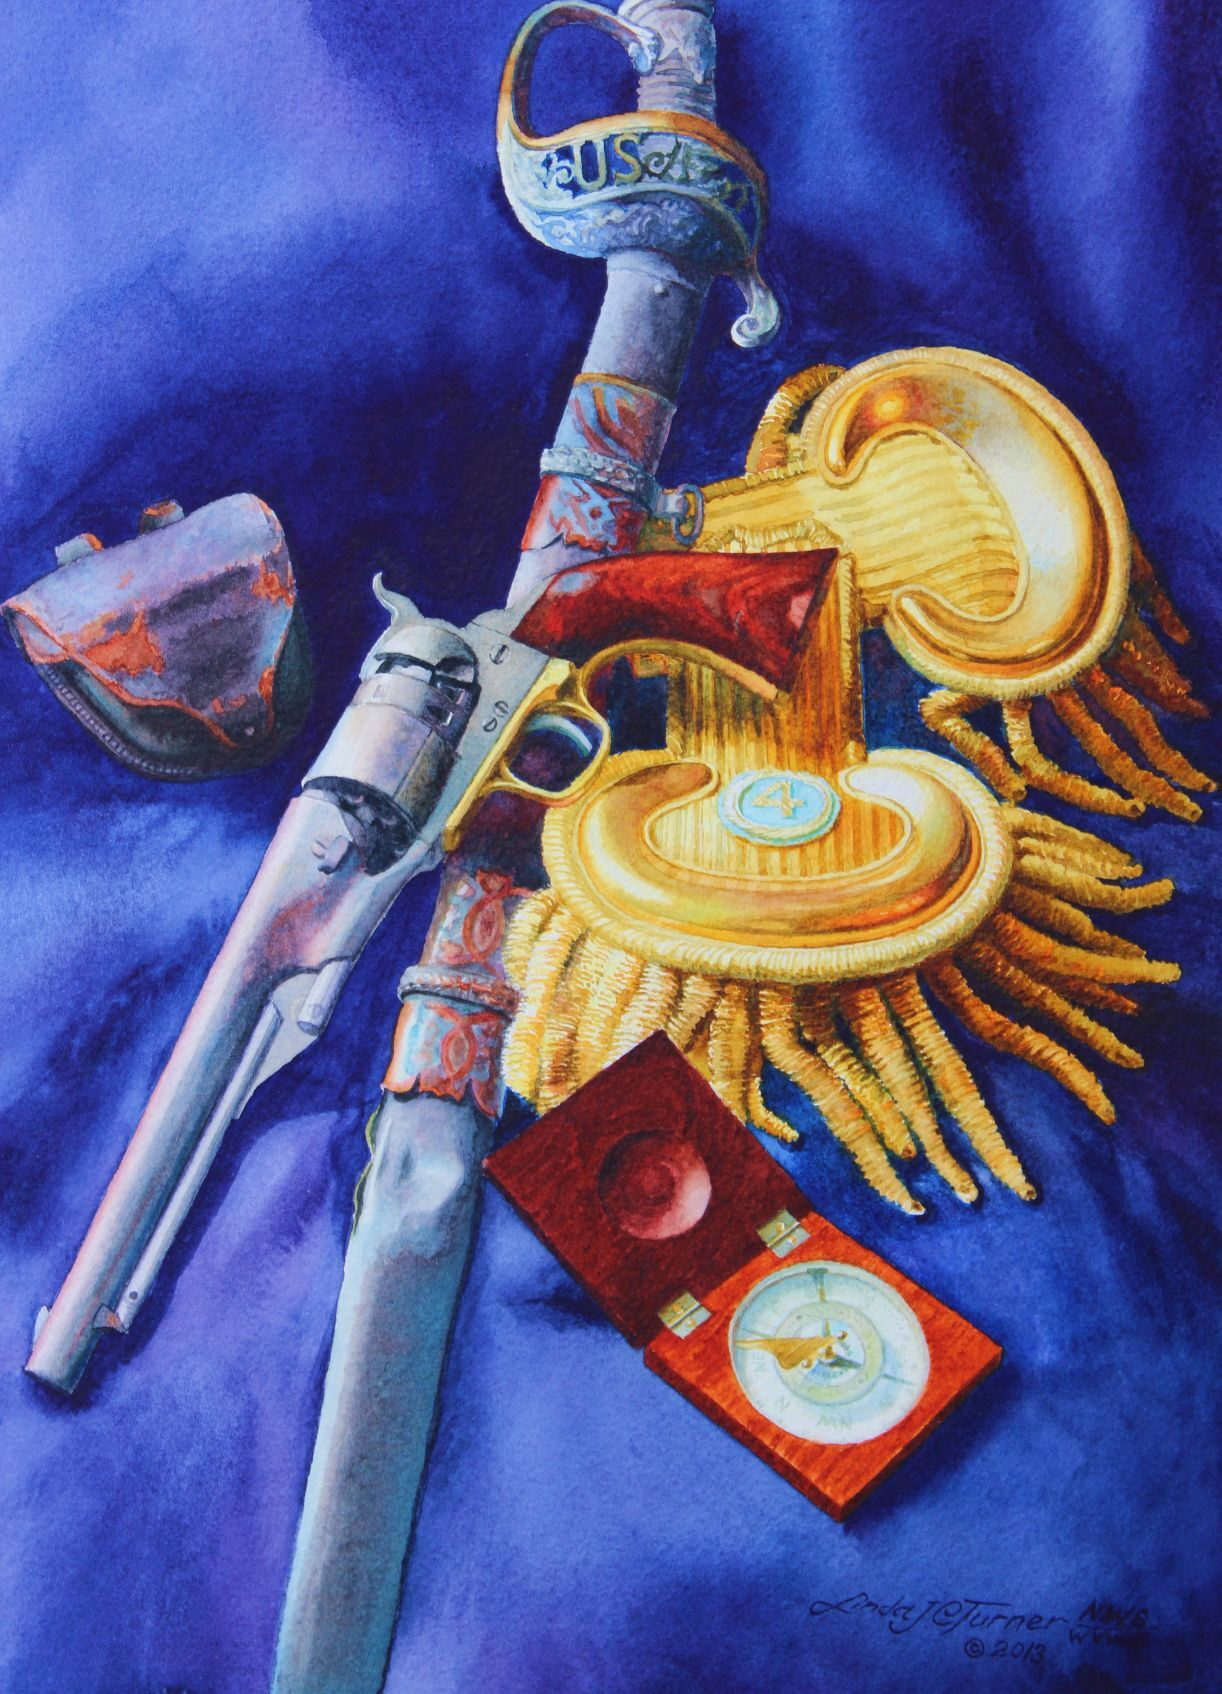 Jane Lew artist's work selected for national exhibition